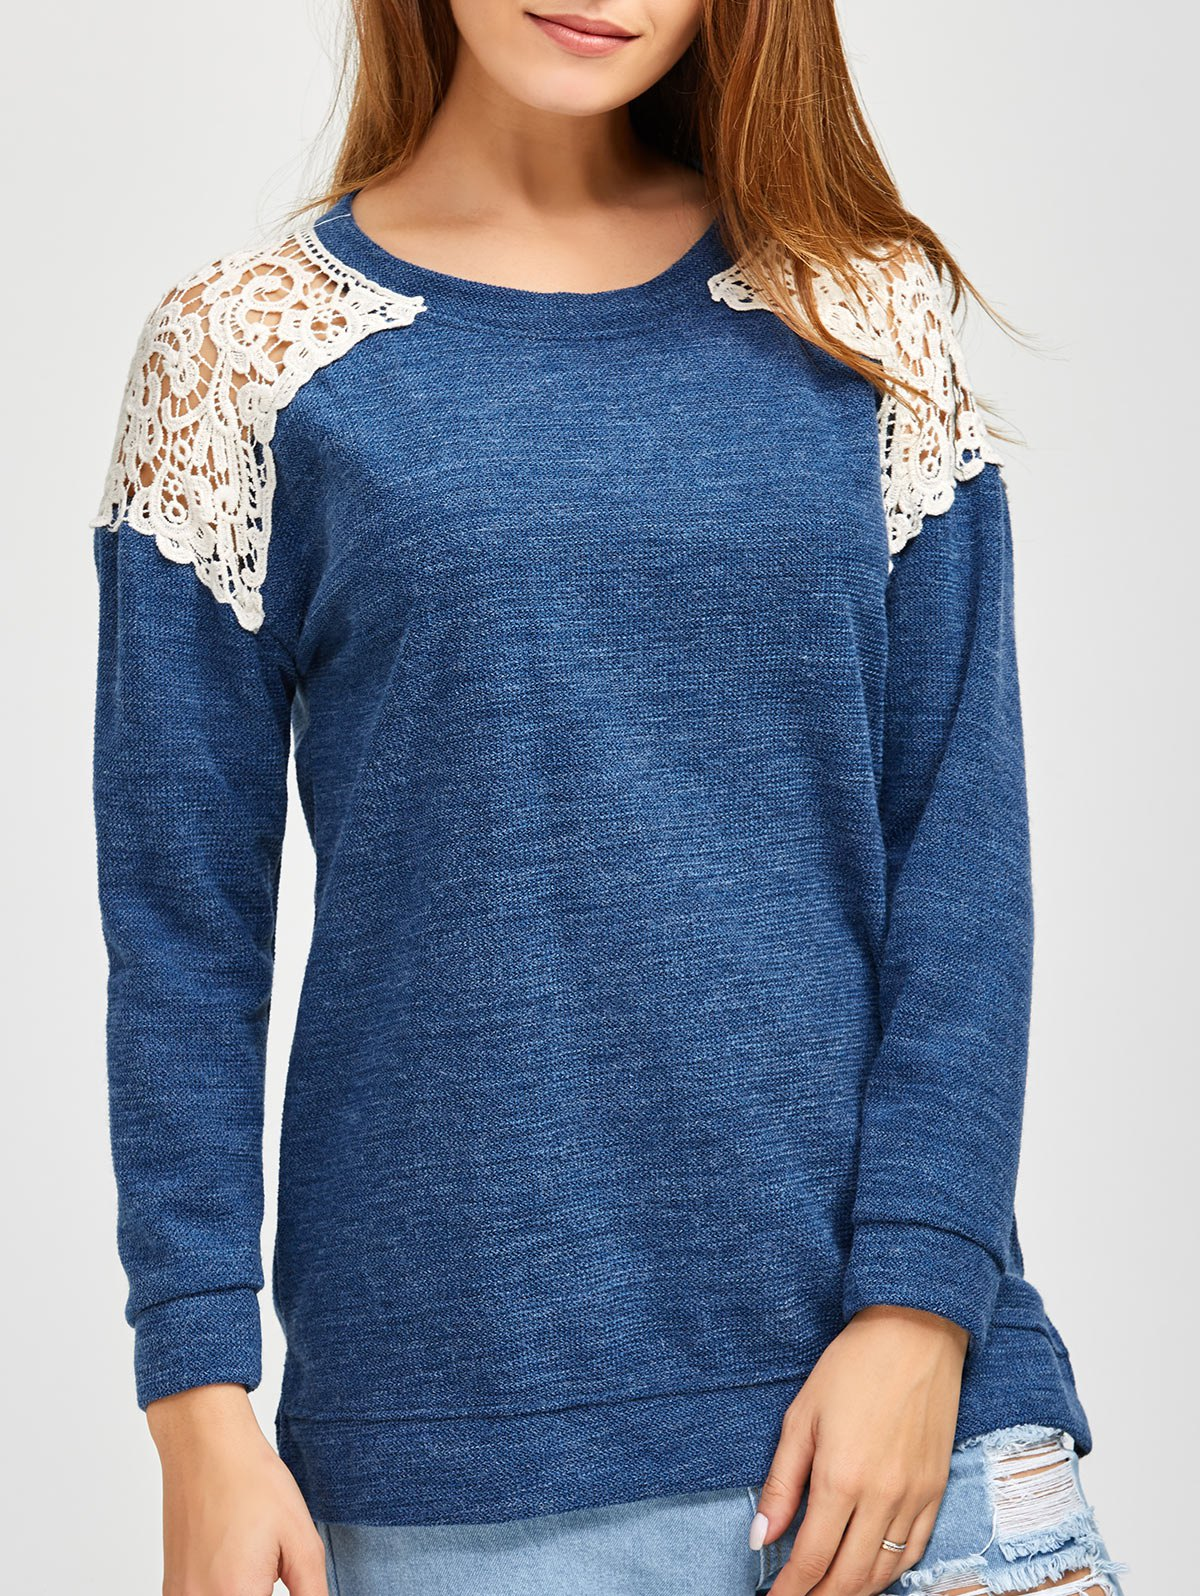 Slit Lace Splicing Loose Sweater